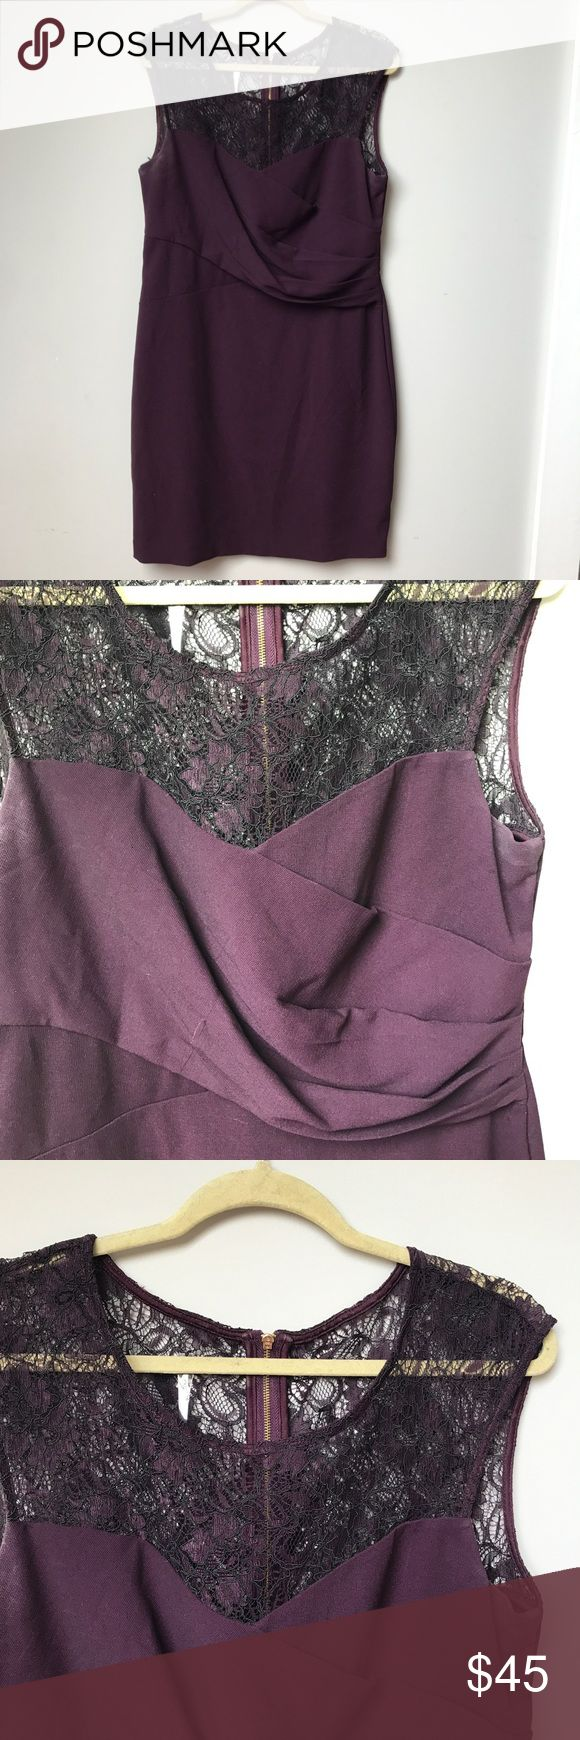 Maroon & lace dress Maroon & lace dress, zip up in the back Calvin Klein Dresses Mini